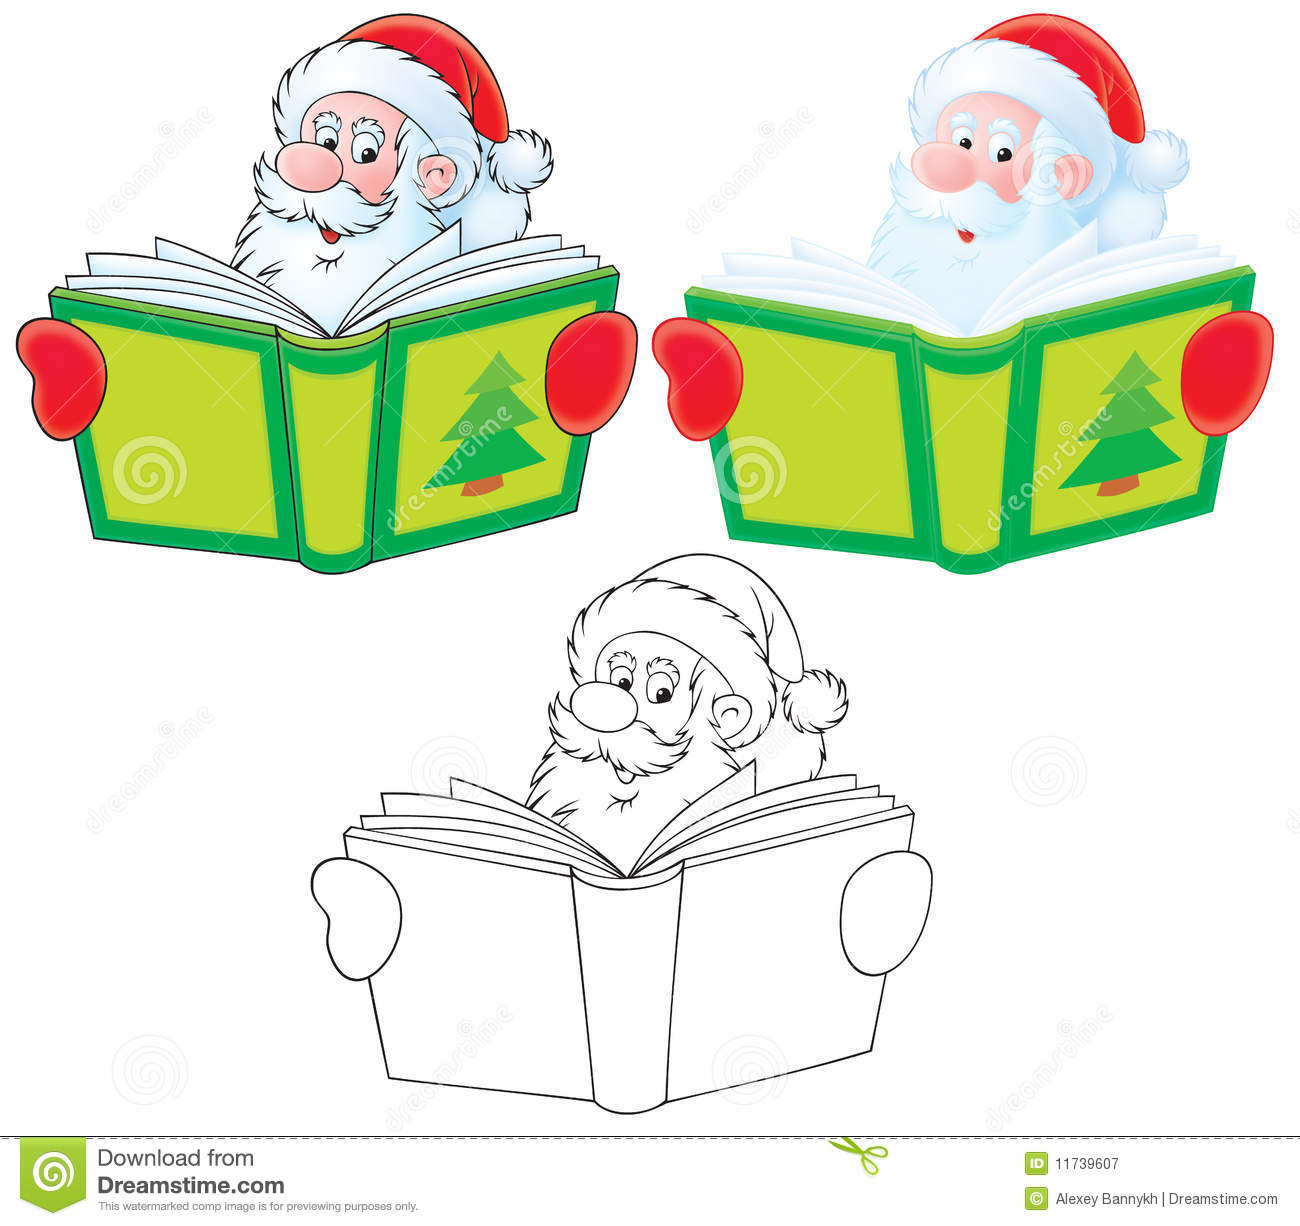 Santa Claus reads a book stock illustration. Illustration of over ...